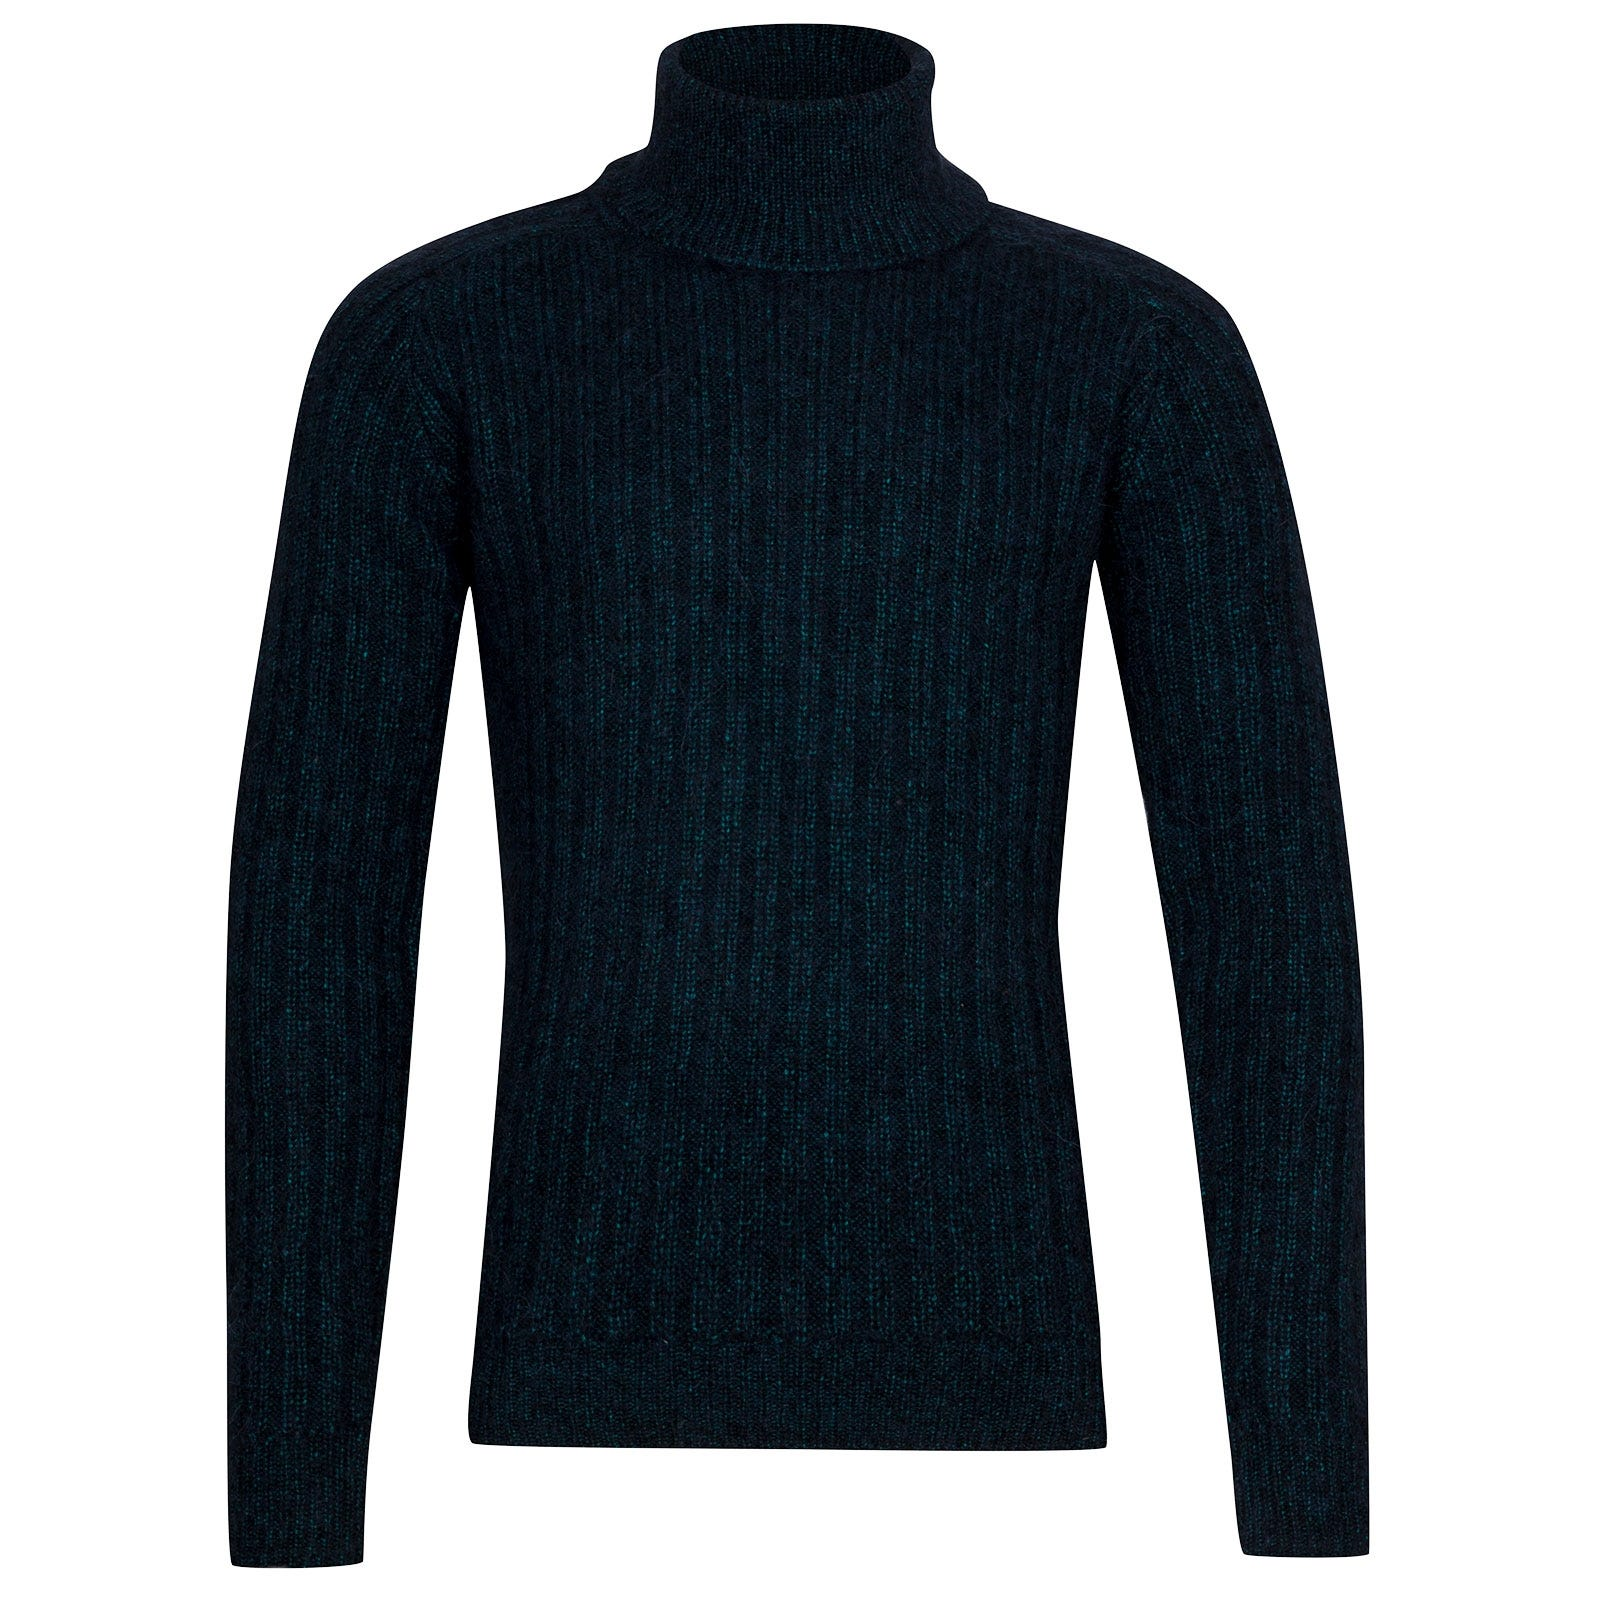 John Smedley Degree Viscose Blend Pullover In Boron Green-S